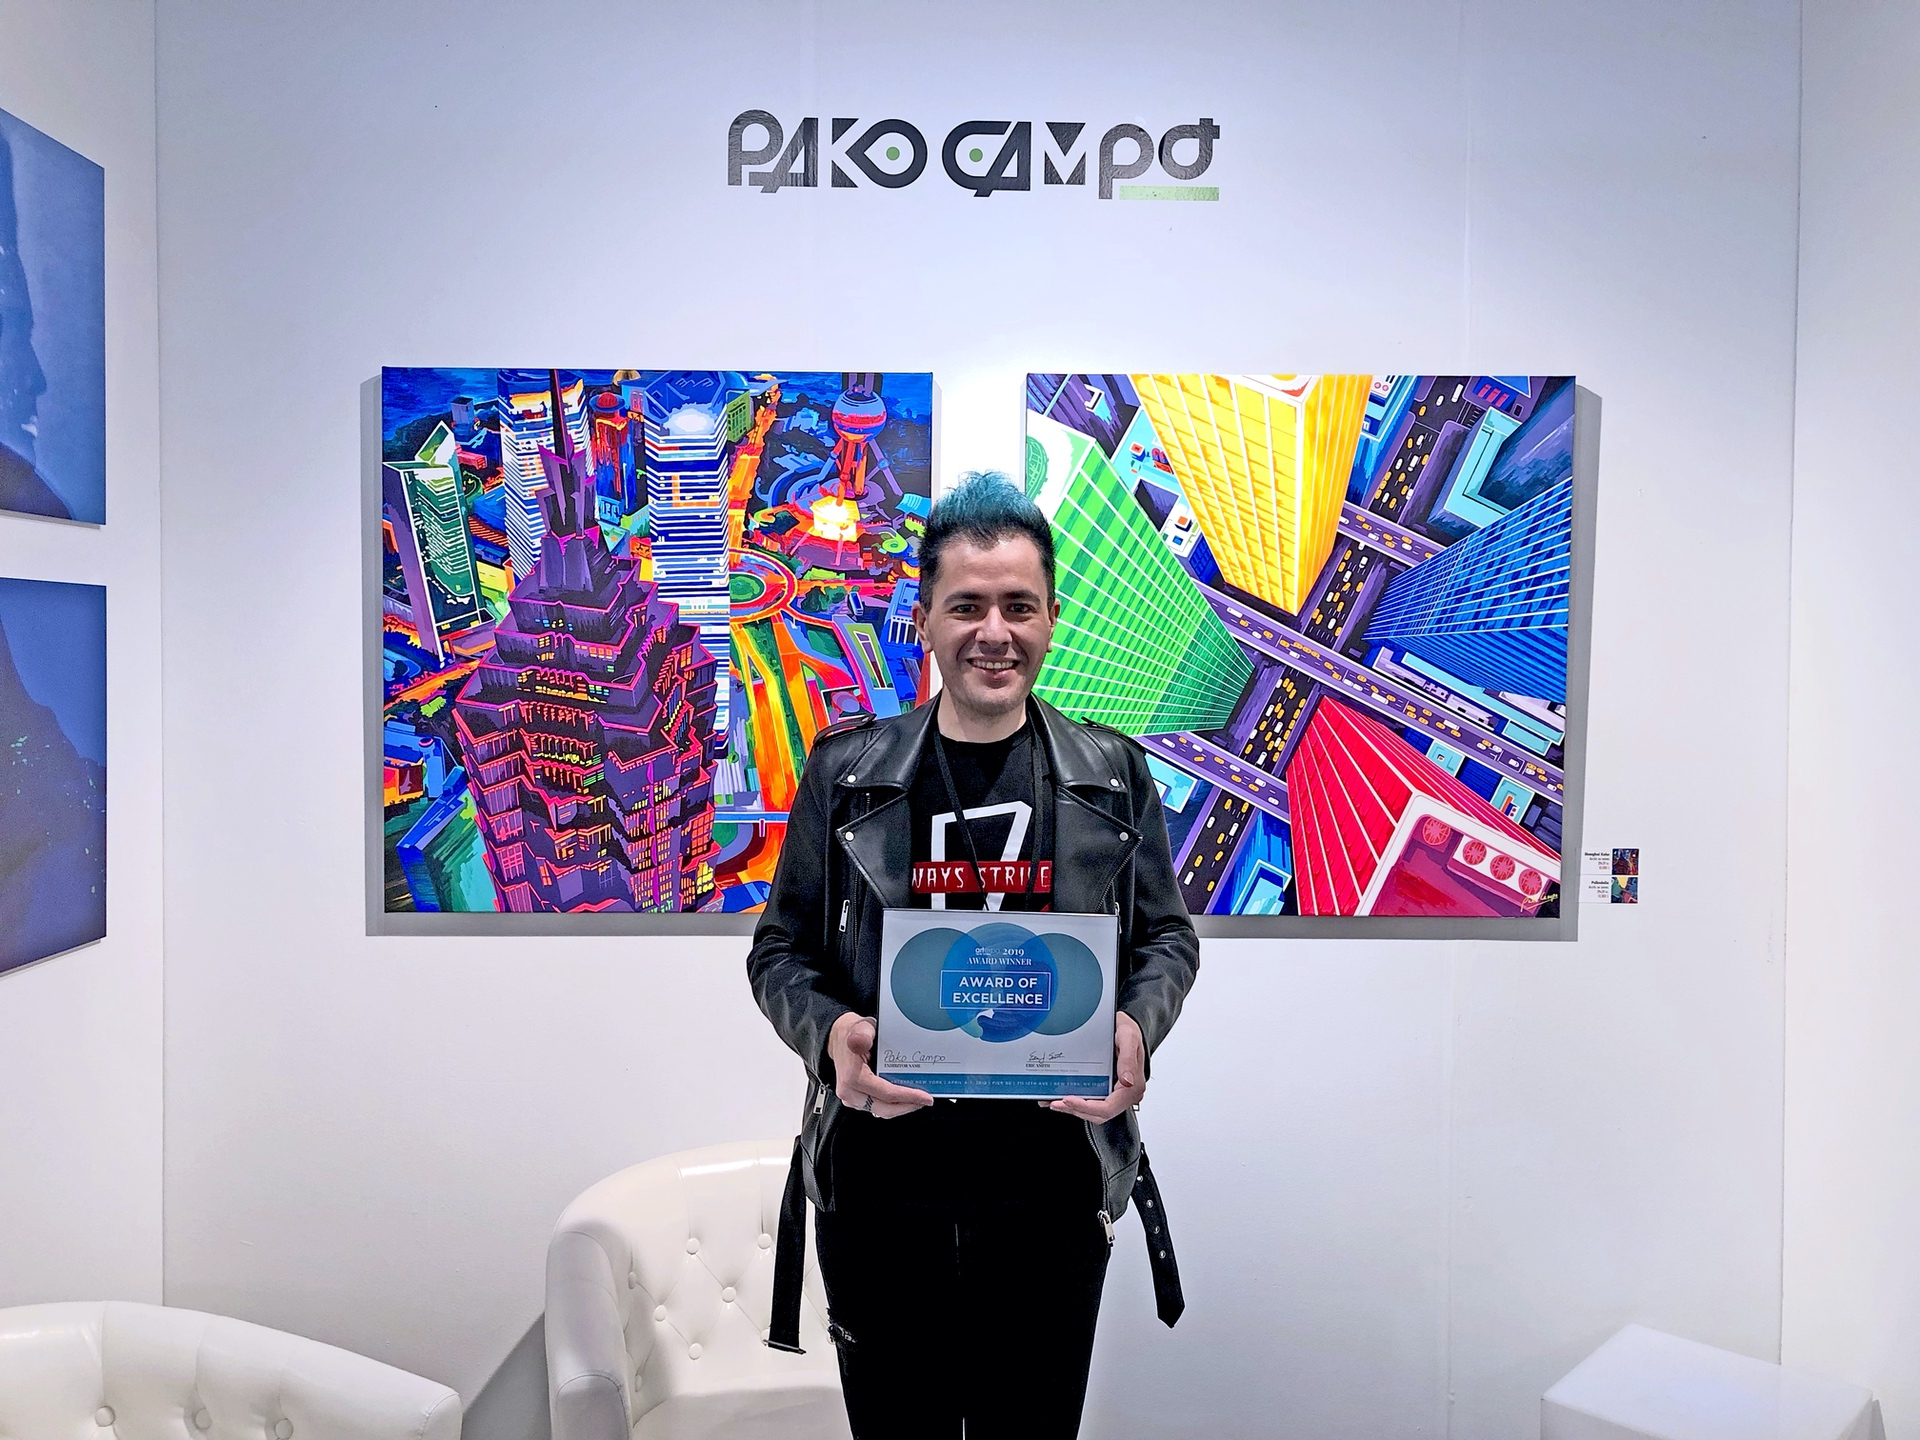 Last day of Artexpo New York 2019 01 by Pako Campo